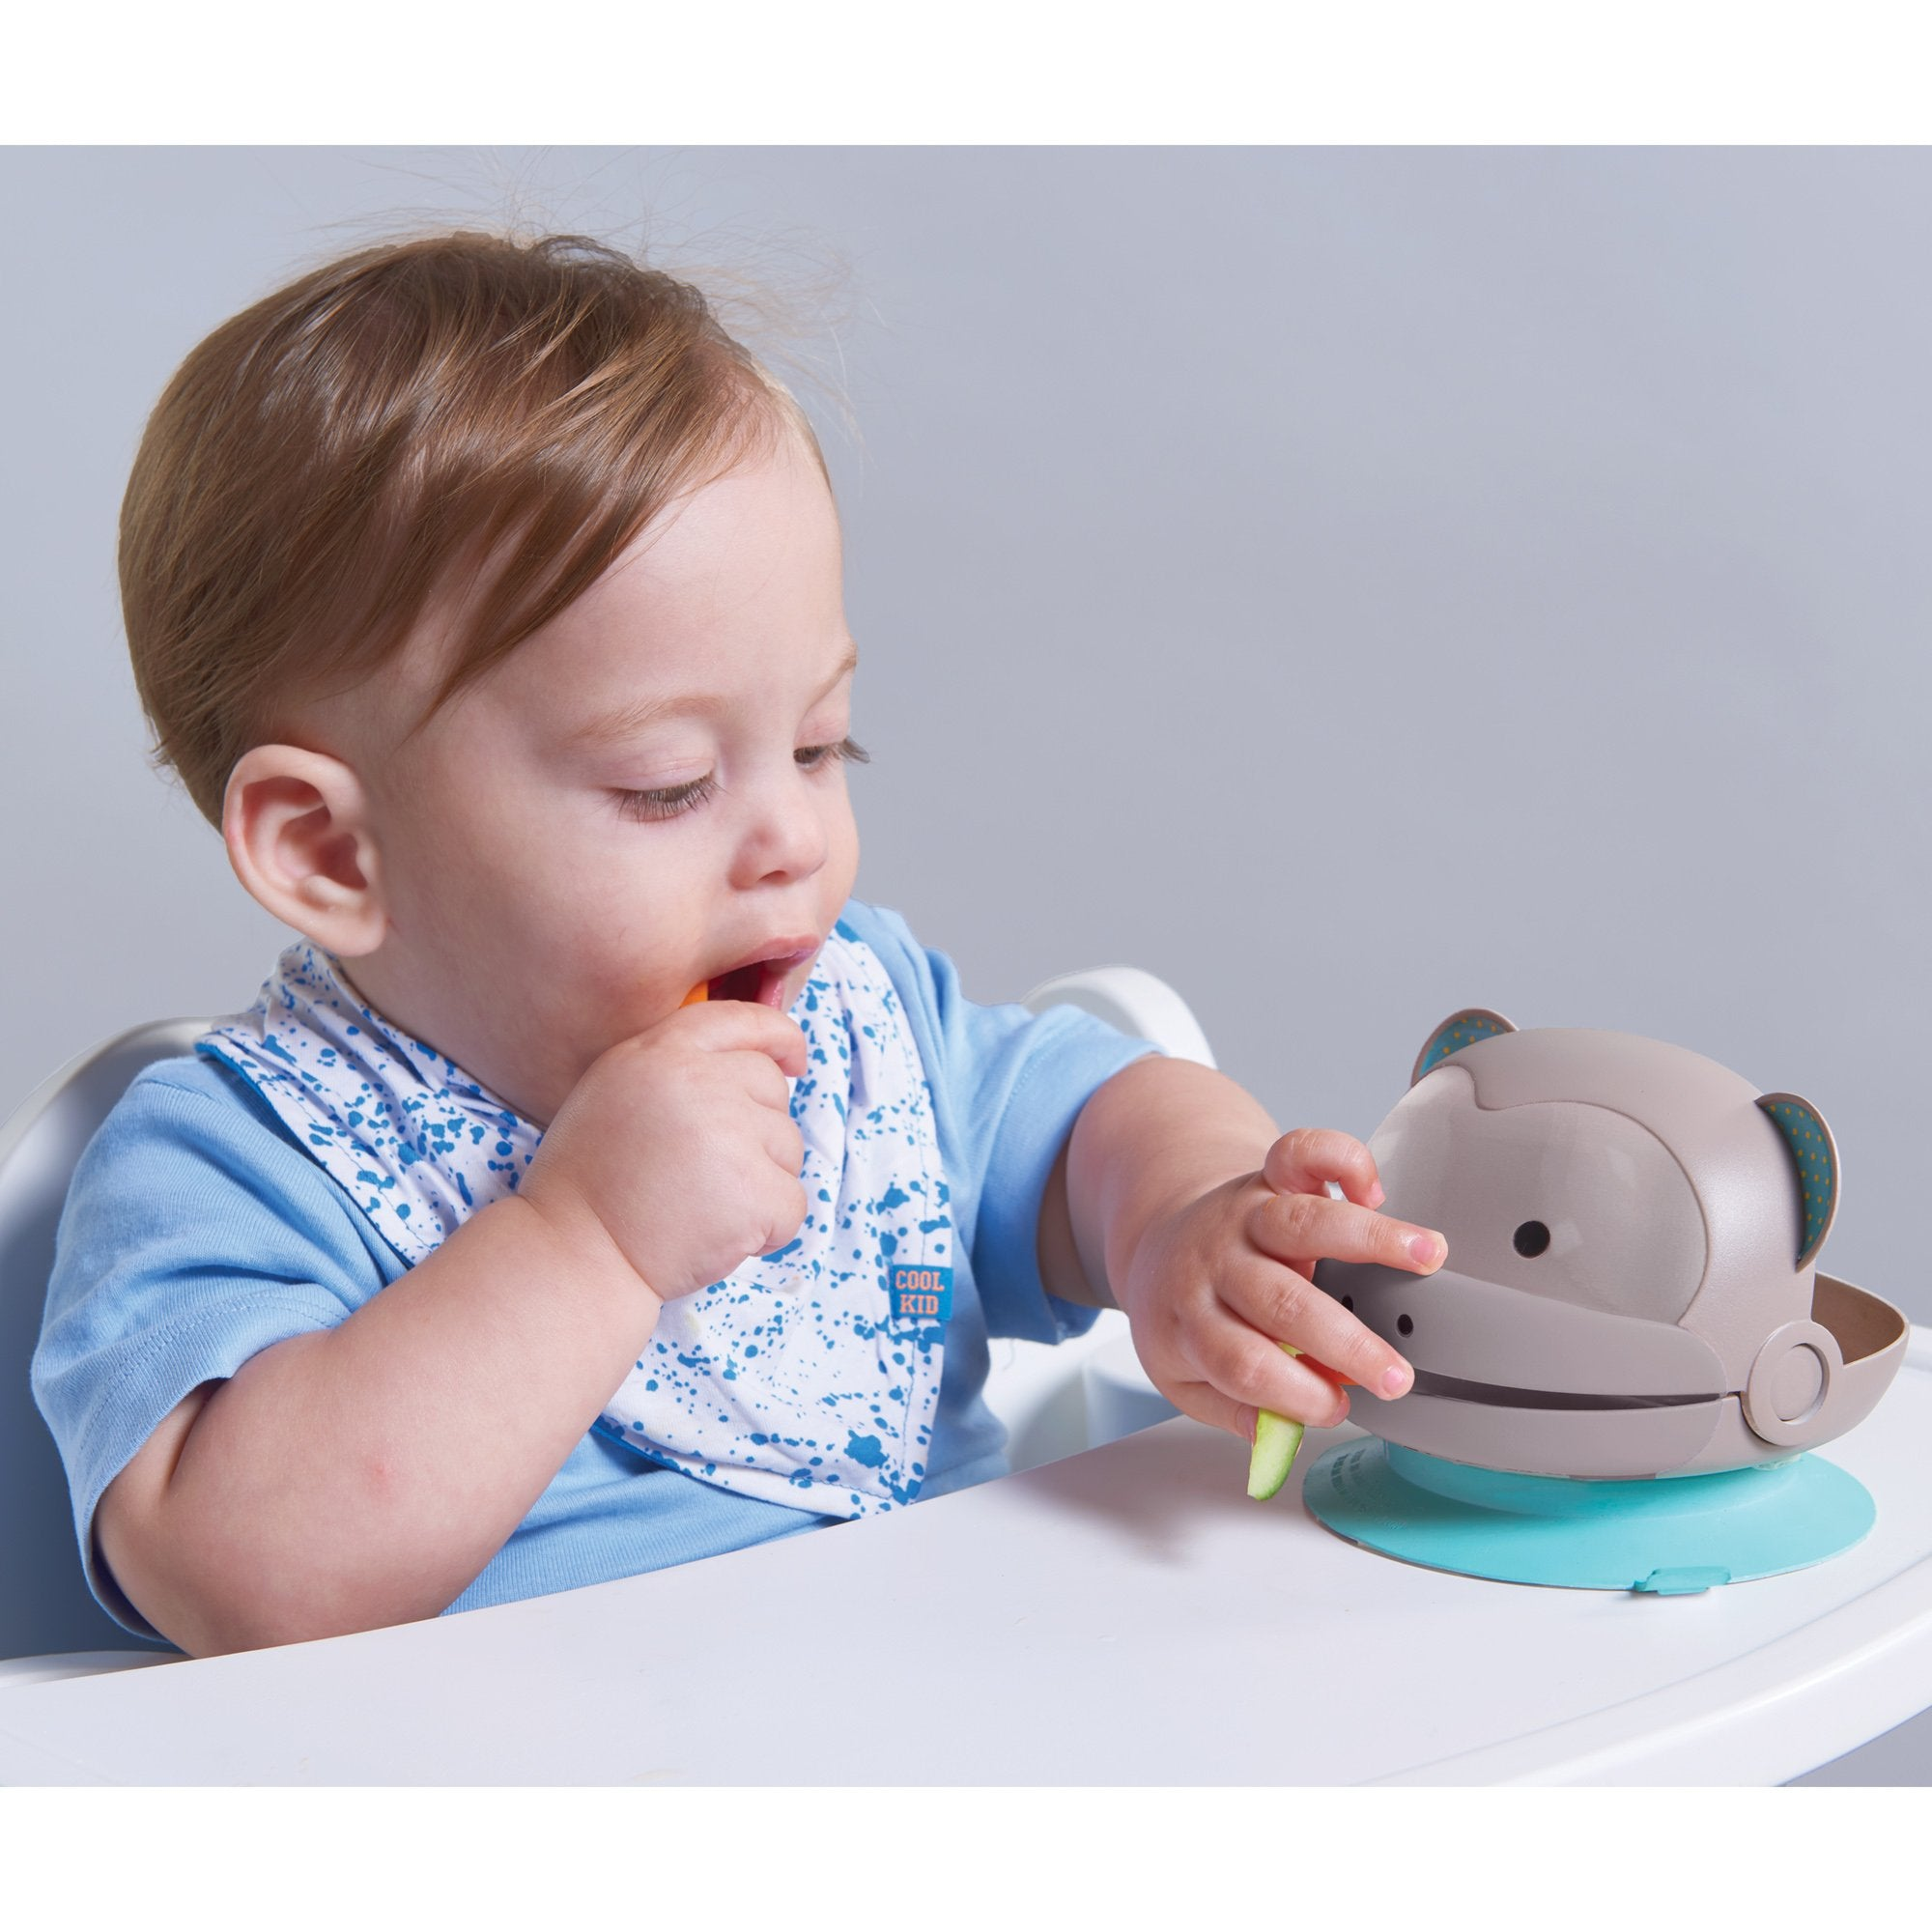 Taf Toys Mealtime Monkey- Hide and Eat